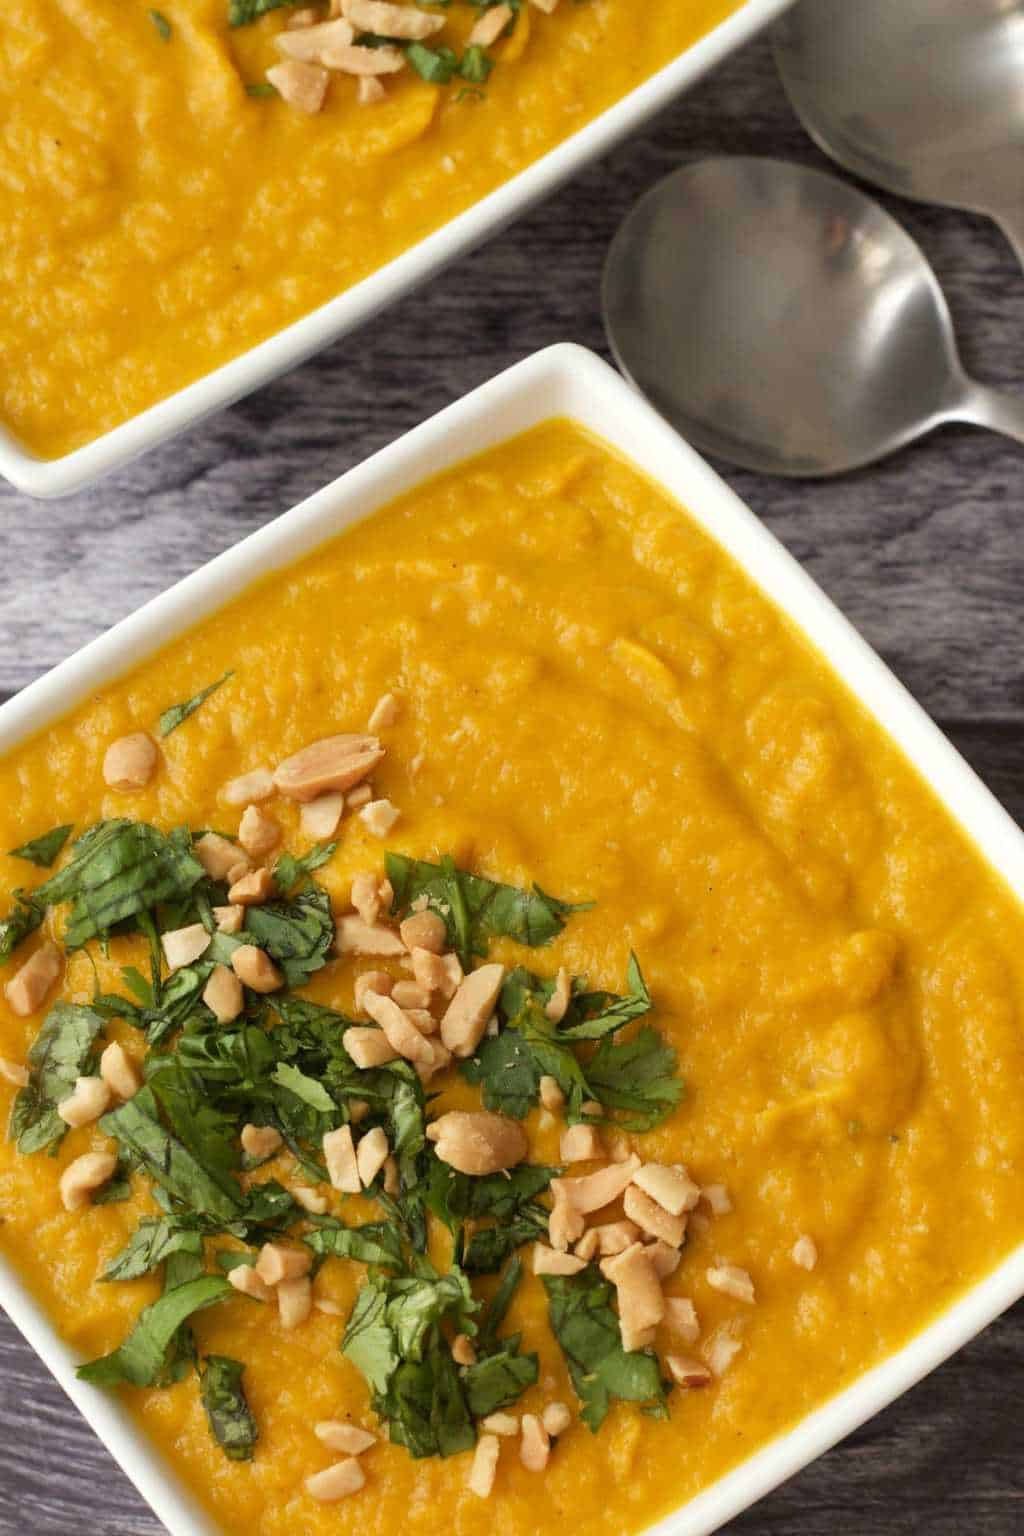 Vegan carrot soup topped with peanuts and chopped cilantro in white bowls.